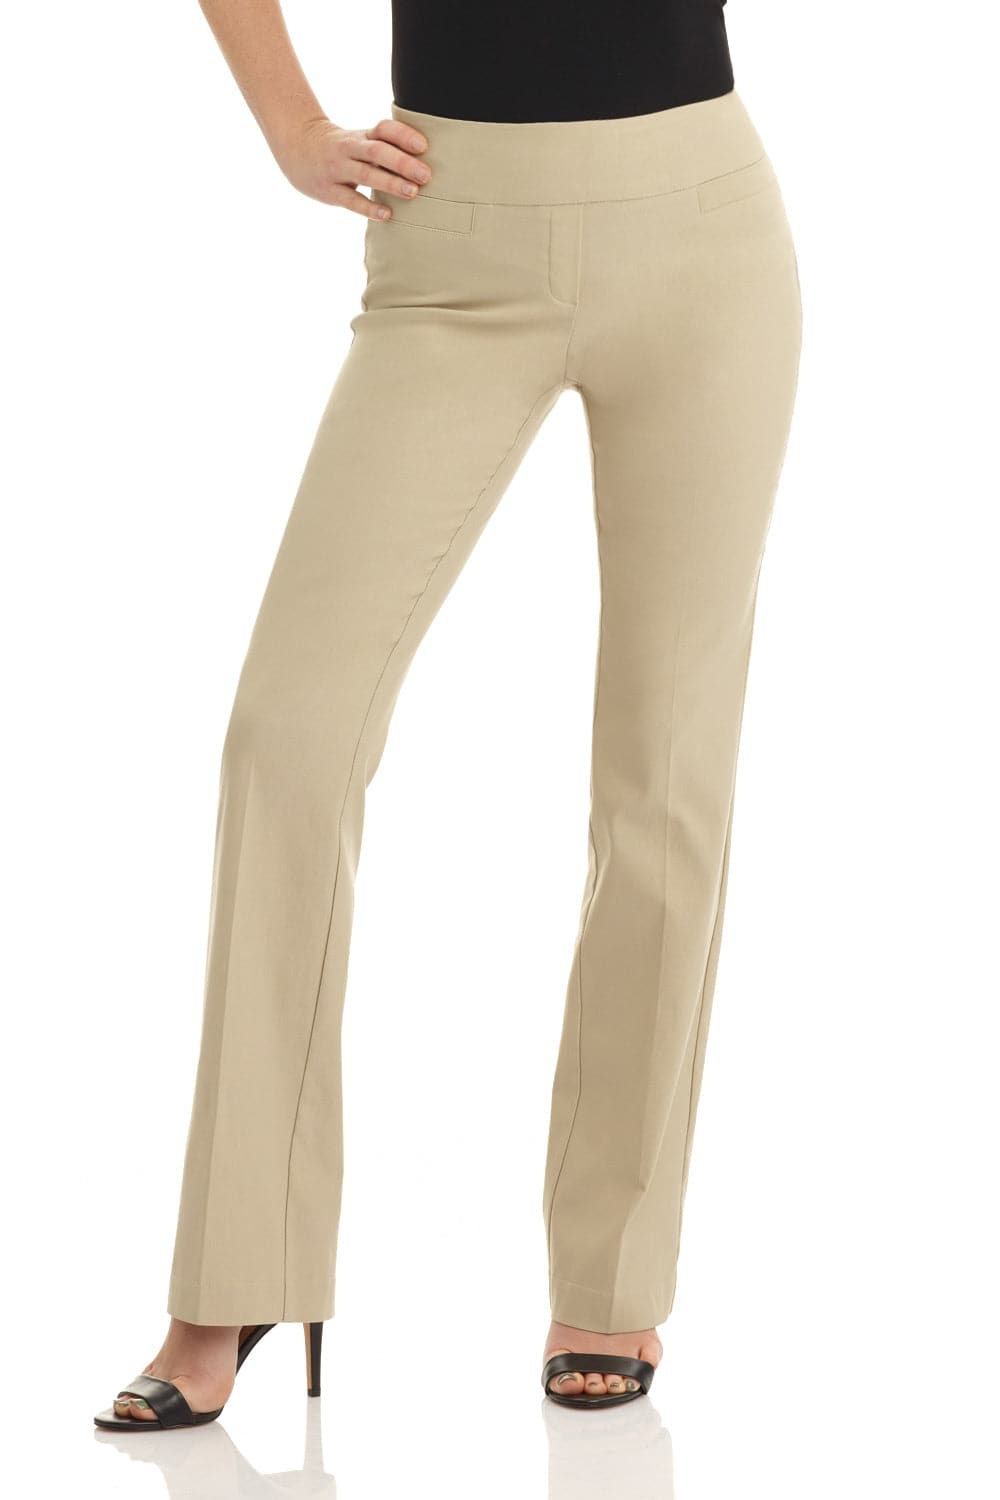 Pull-on bootcut dress pants